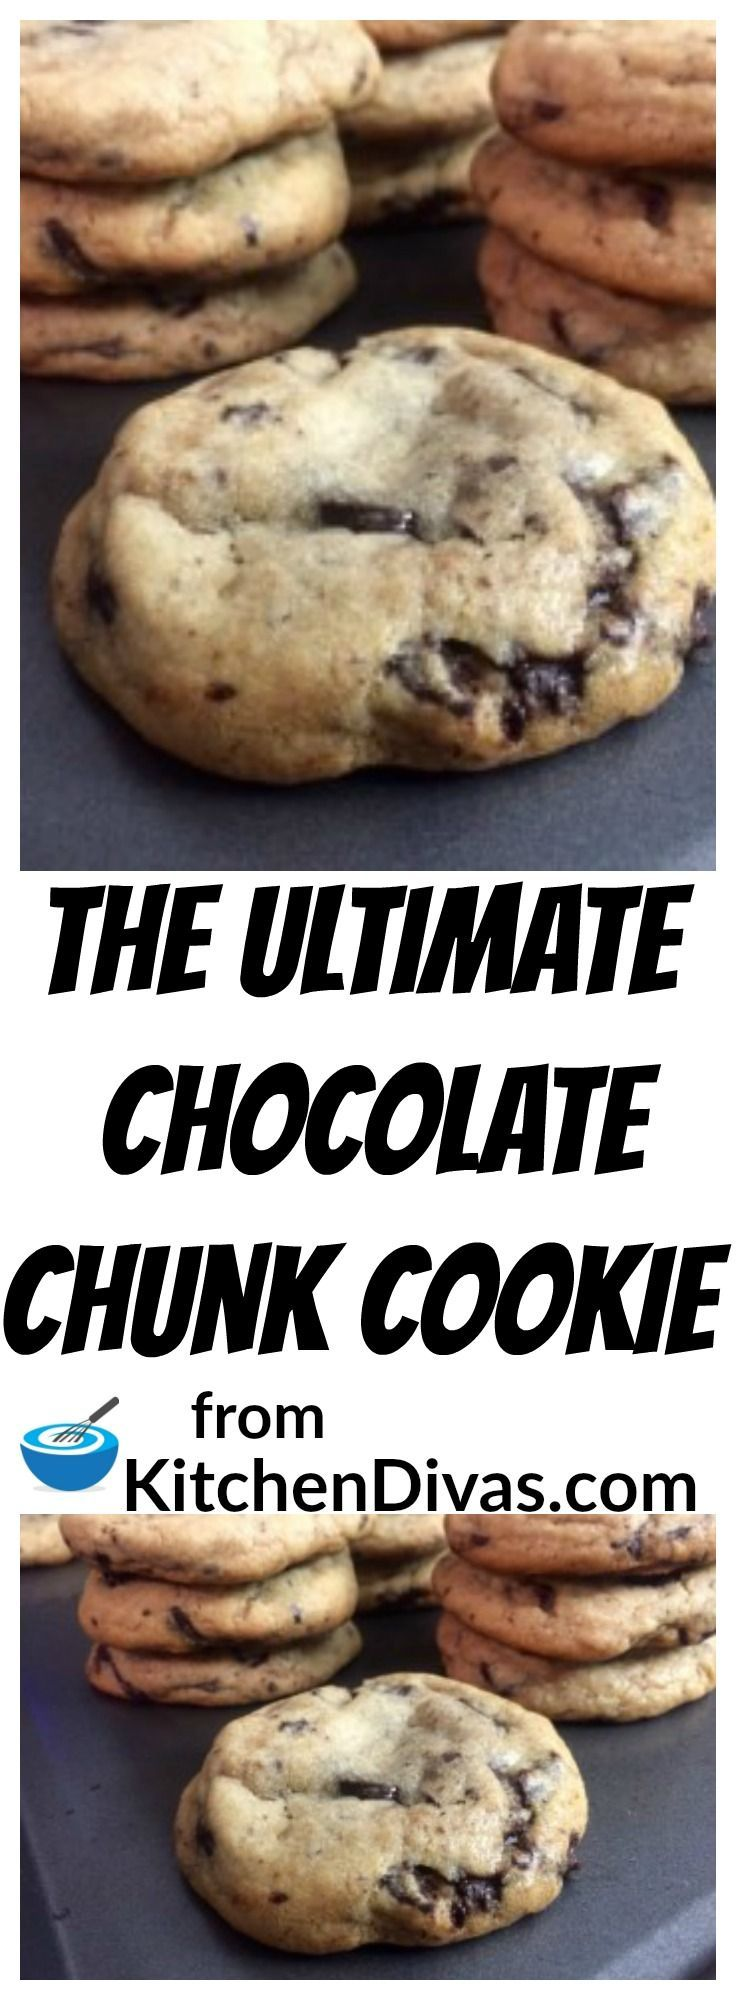 These cookies are perfection. They are soft, thick and chewy. They melt in your mouth. Whether you use chocolate chips, Skor bits or our favorite, broken chunks of chocolate you will love these cookies. They care called the Ultimate Chocolate Chunk Cookie for a reason! They are super easy and quick to make. They keep in an airtight container for about three days and freeze beautifully. We always try to keep some around just in case the mood strikes us!